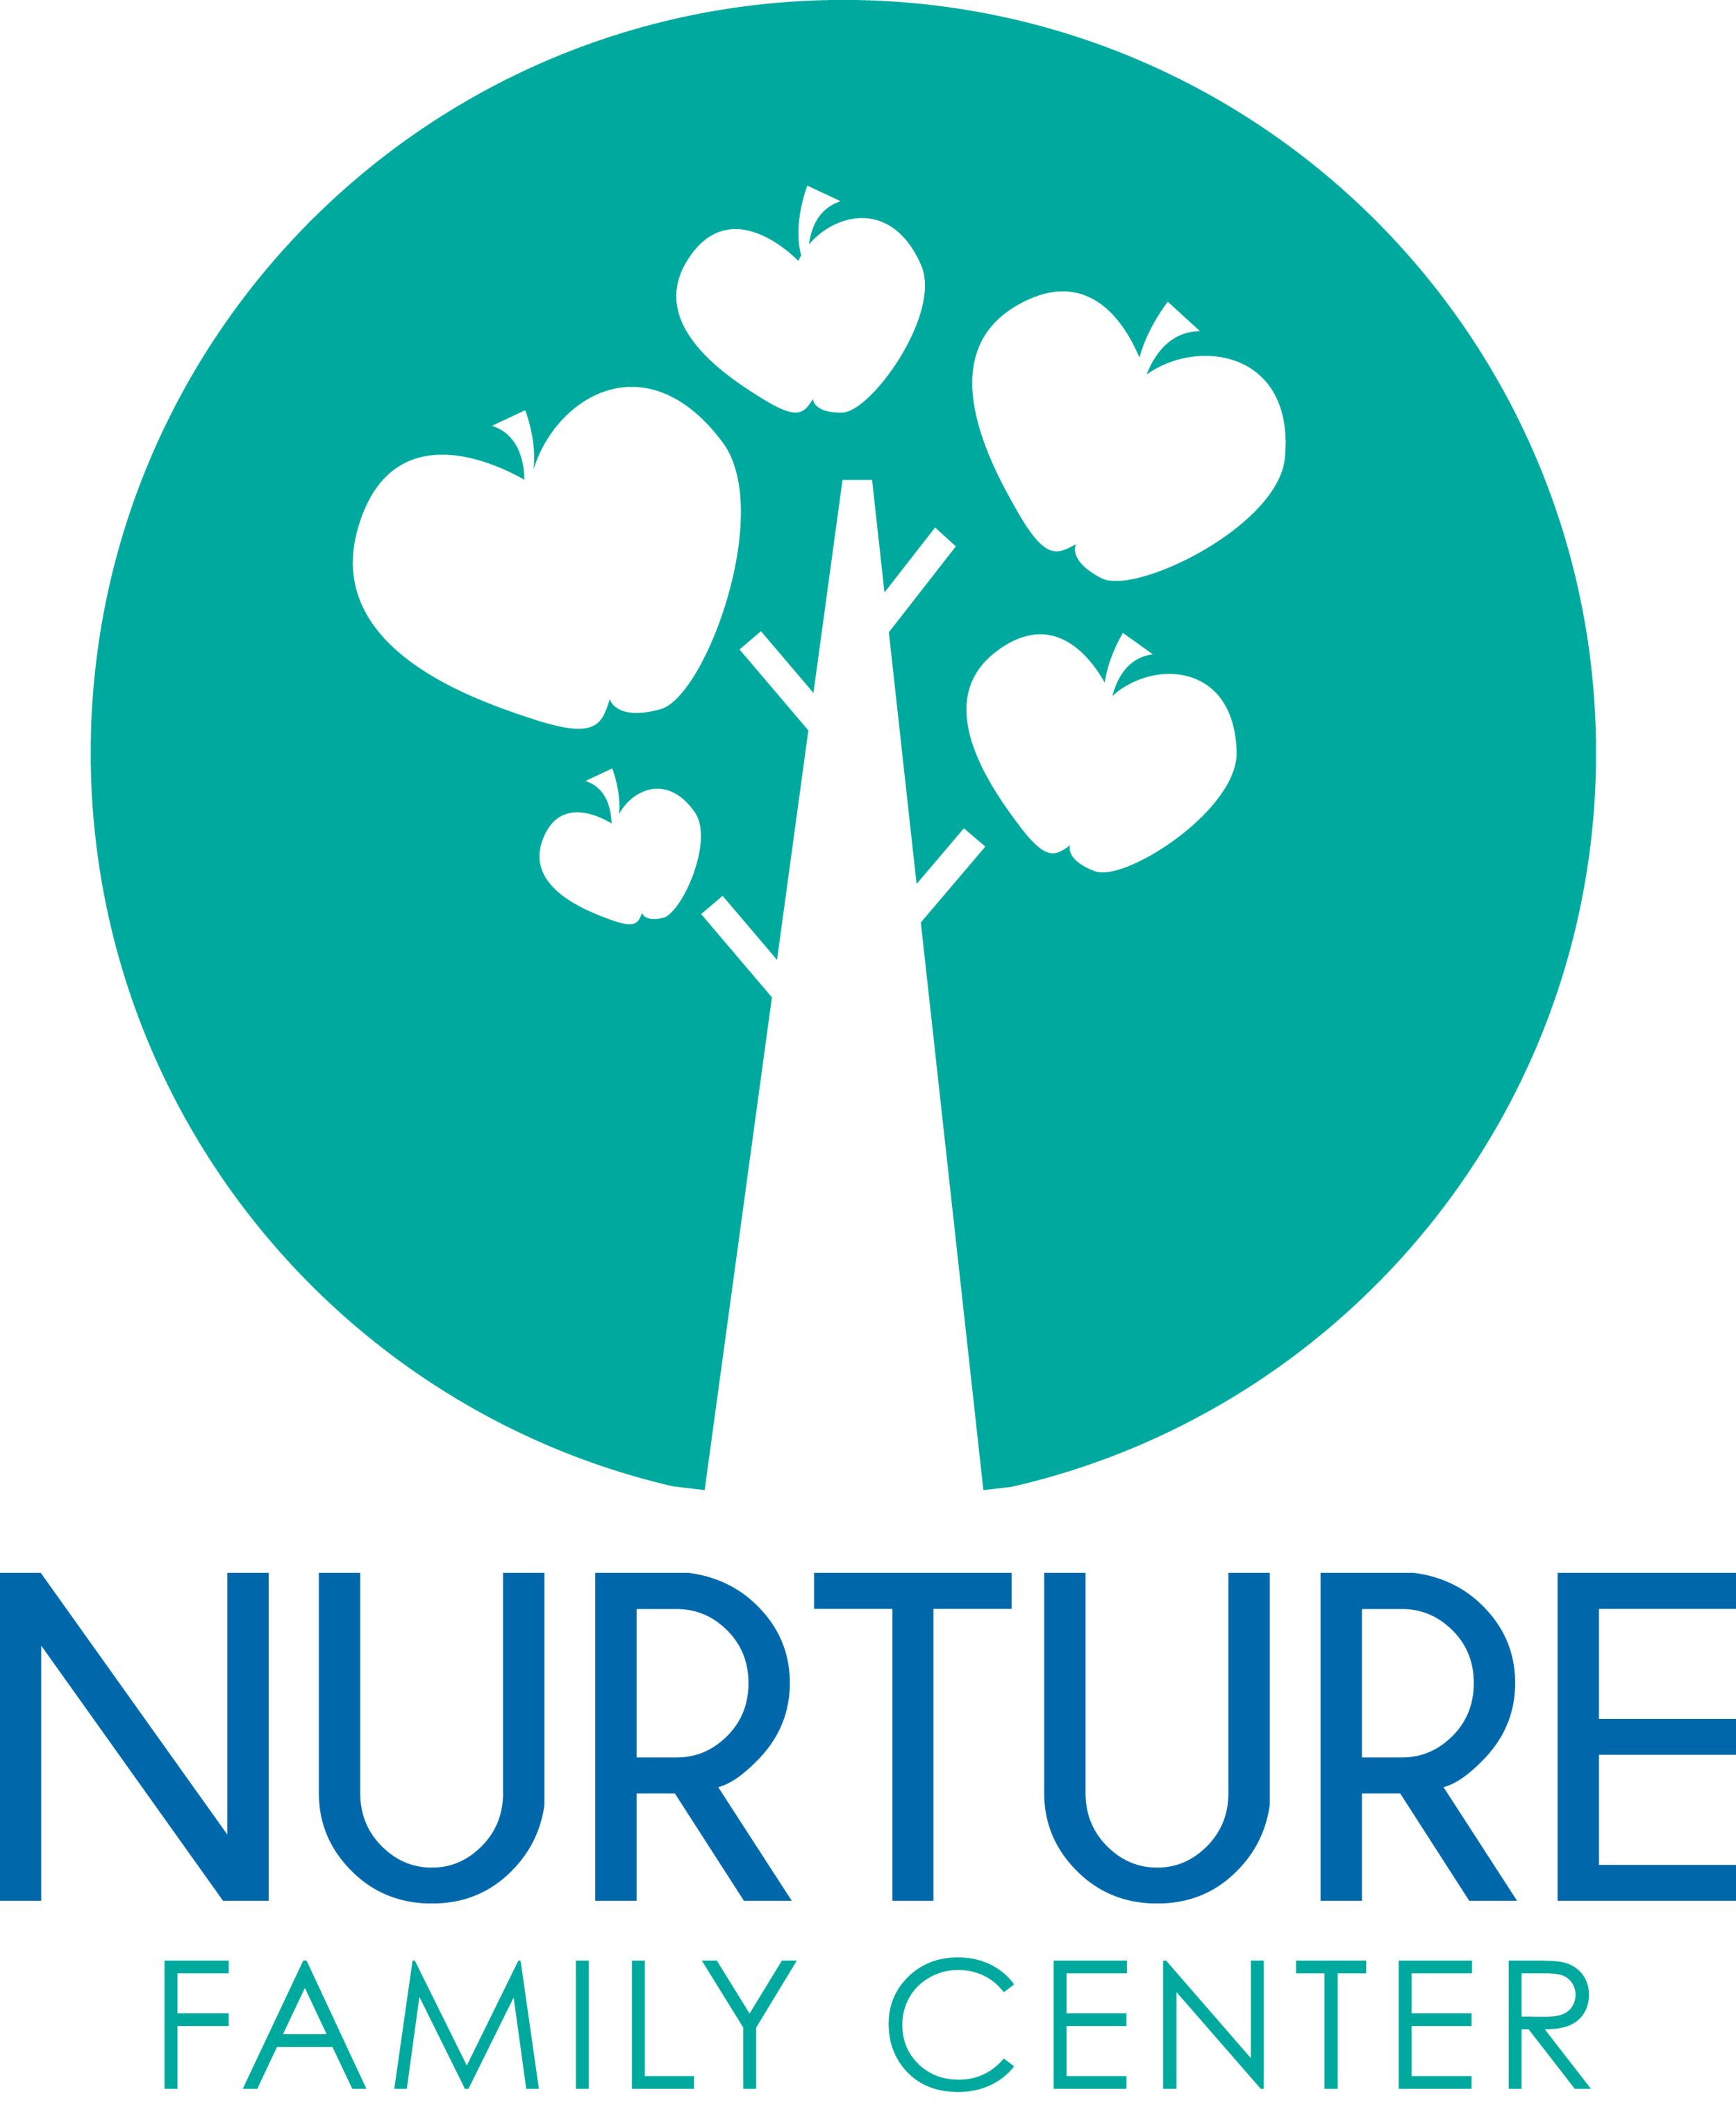 NURTURE_logo_FINAL.png